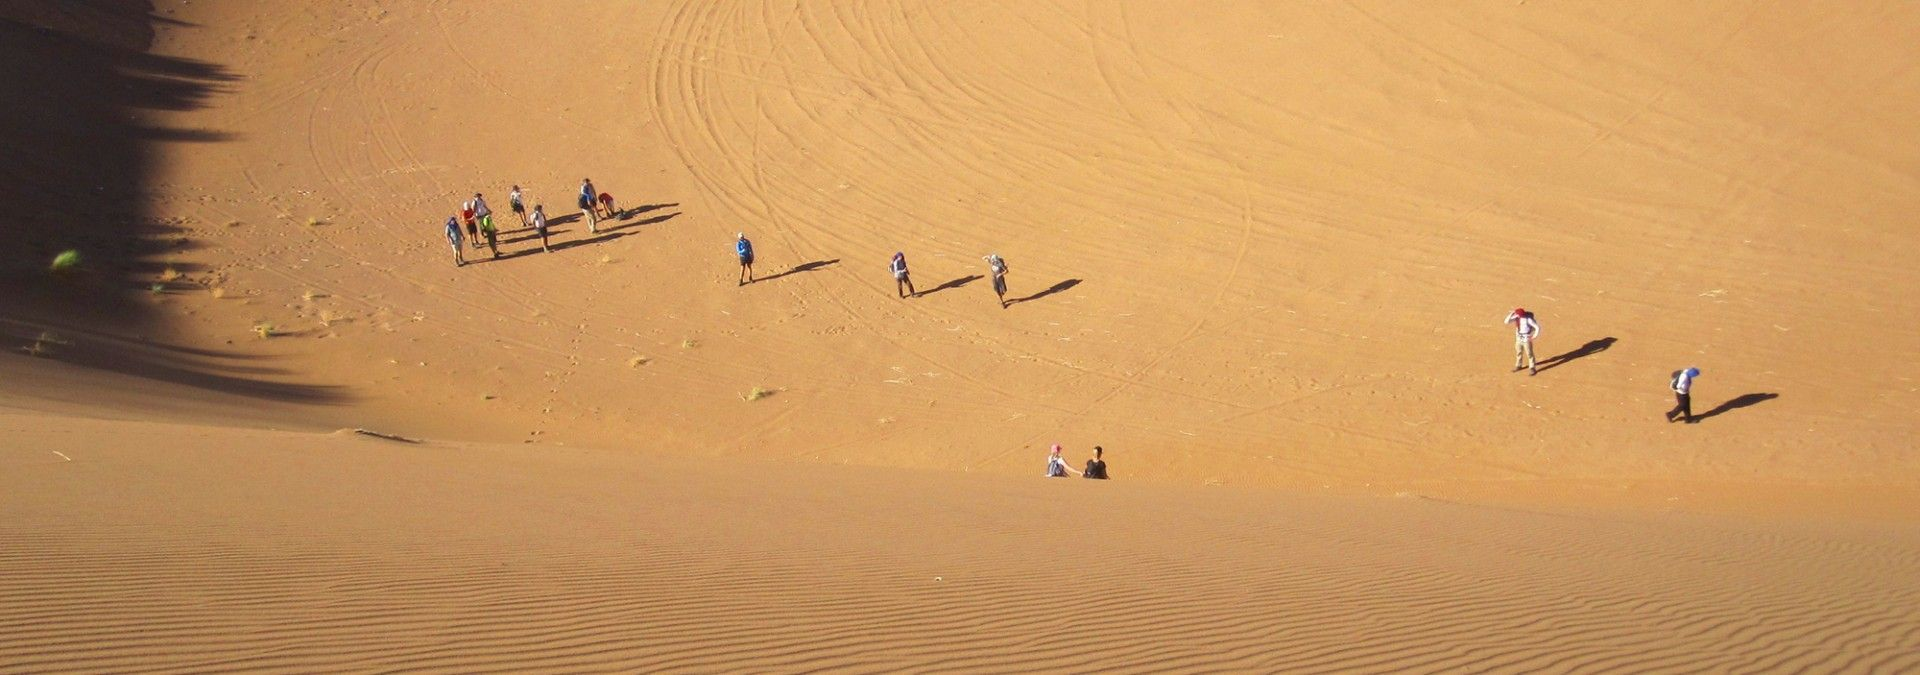 Looking_down_from_Erg_Chigaga_Dune_Sahara.jpg